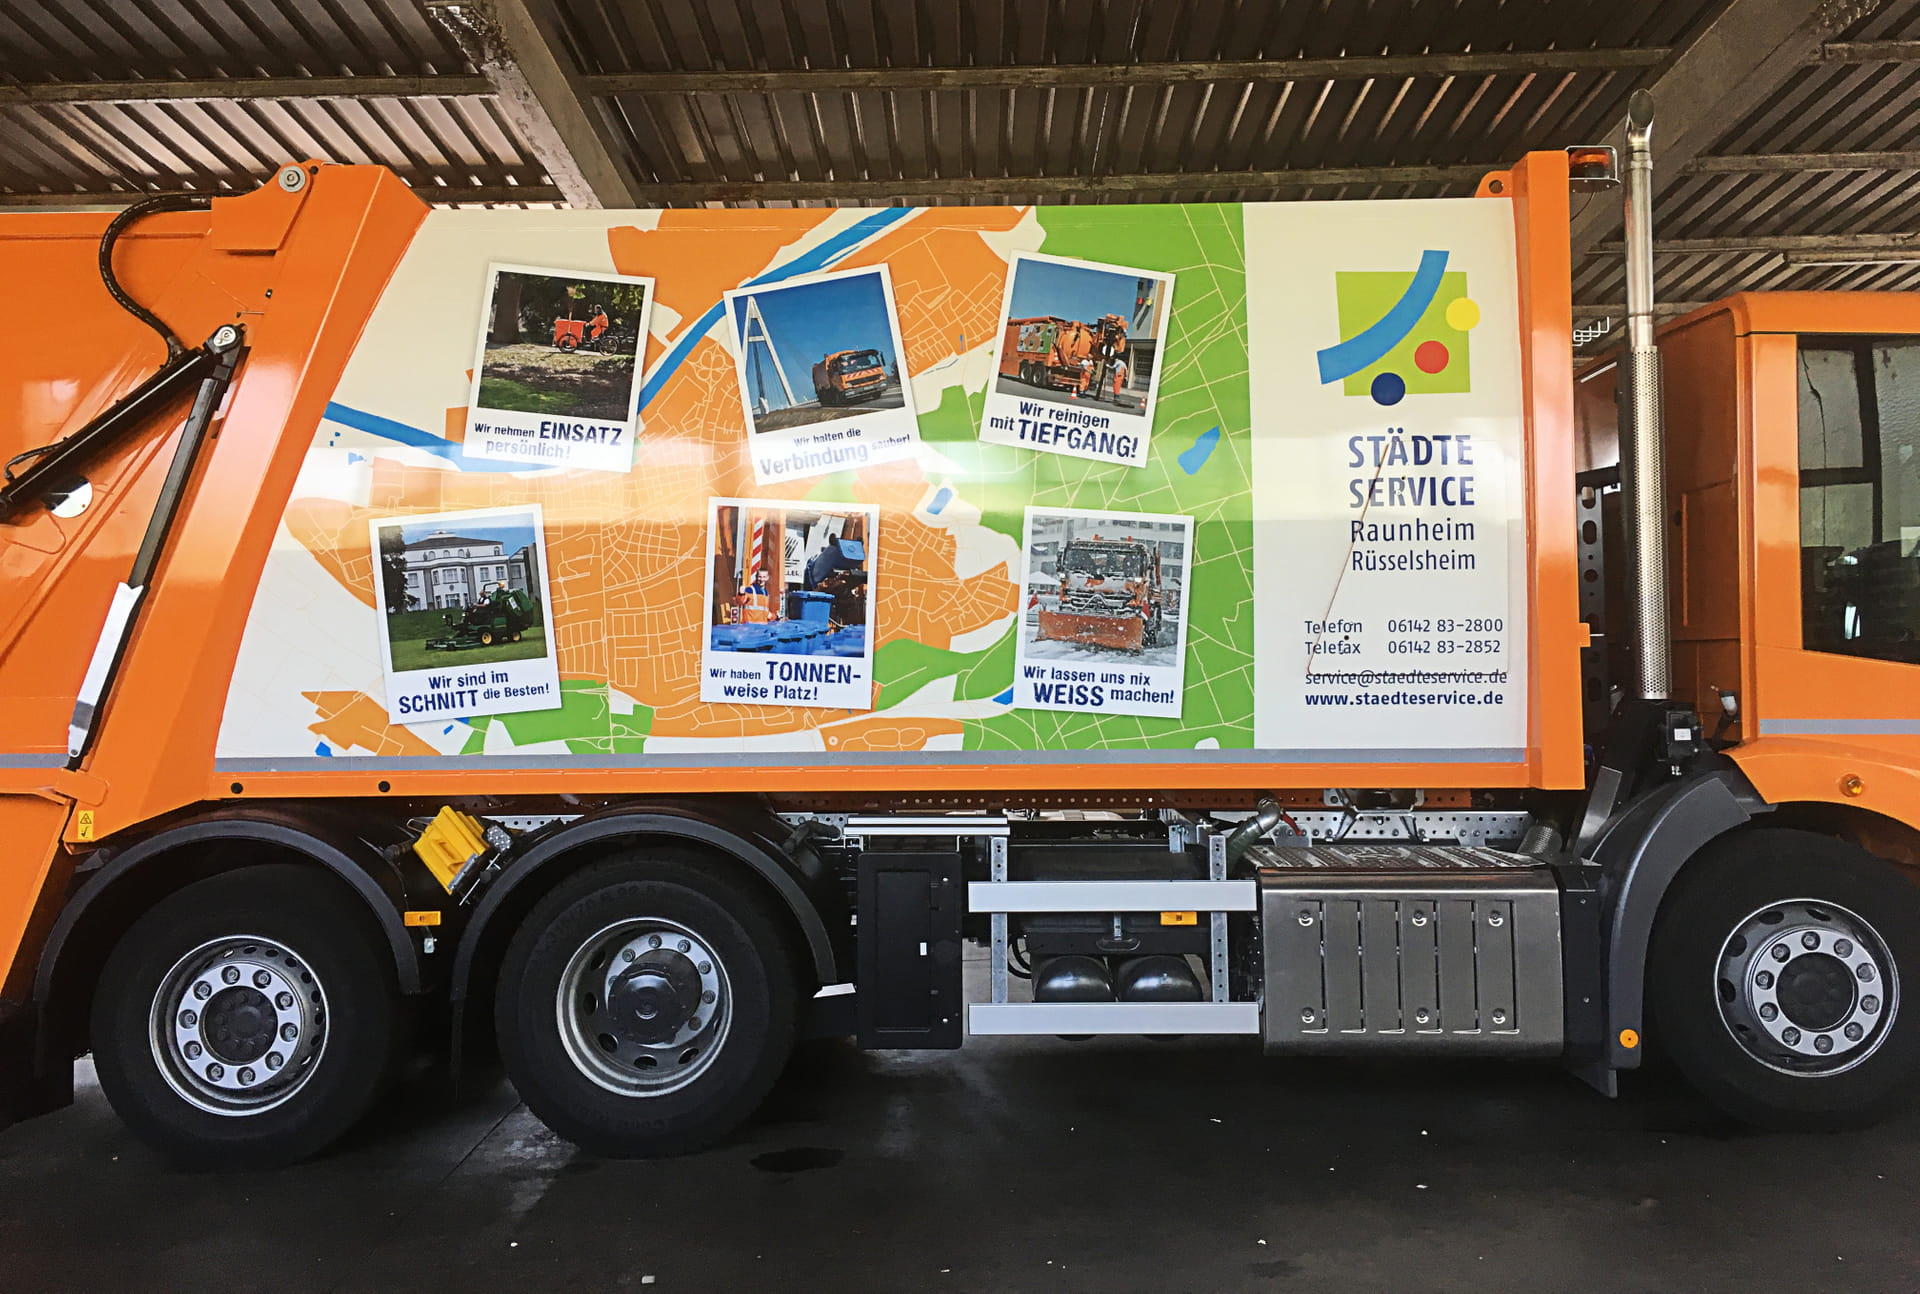 Digital printing for large vehicles car wrapping and Foil printing, powerpress garbage truck (vehicle lettering) for Städteservice from anplakt